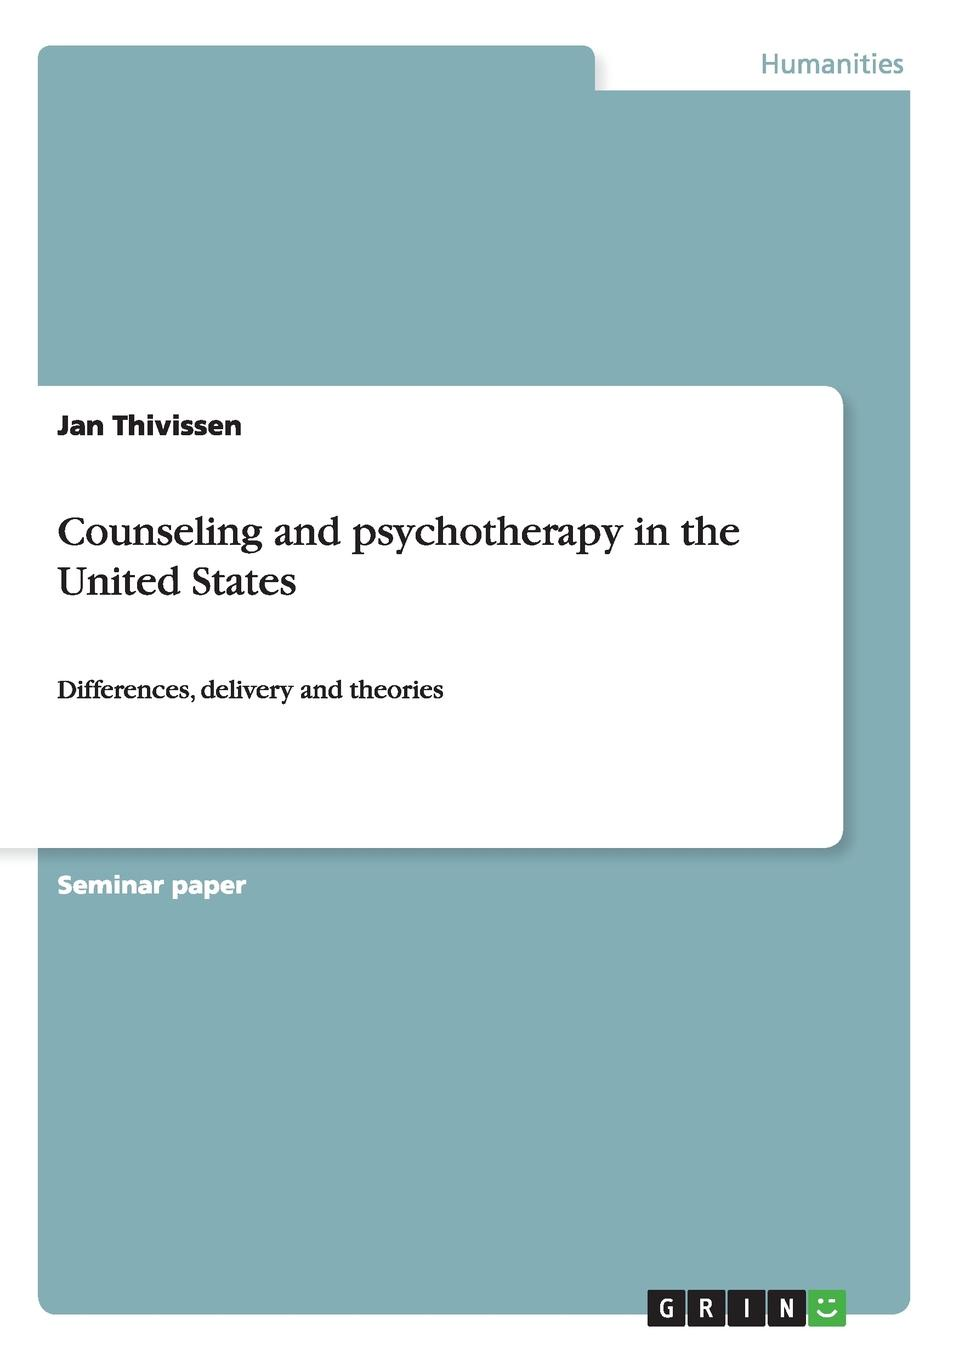 Jan Thivissen Counseling and psychotherapy in the United States kim metz careers in mental health opportunities in psychology counseling and social work